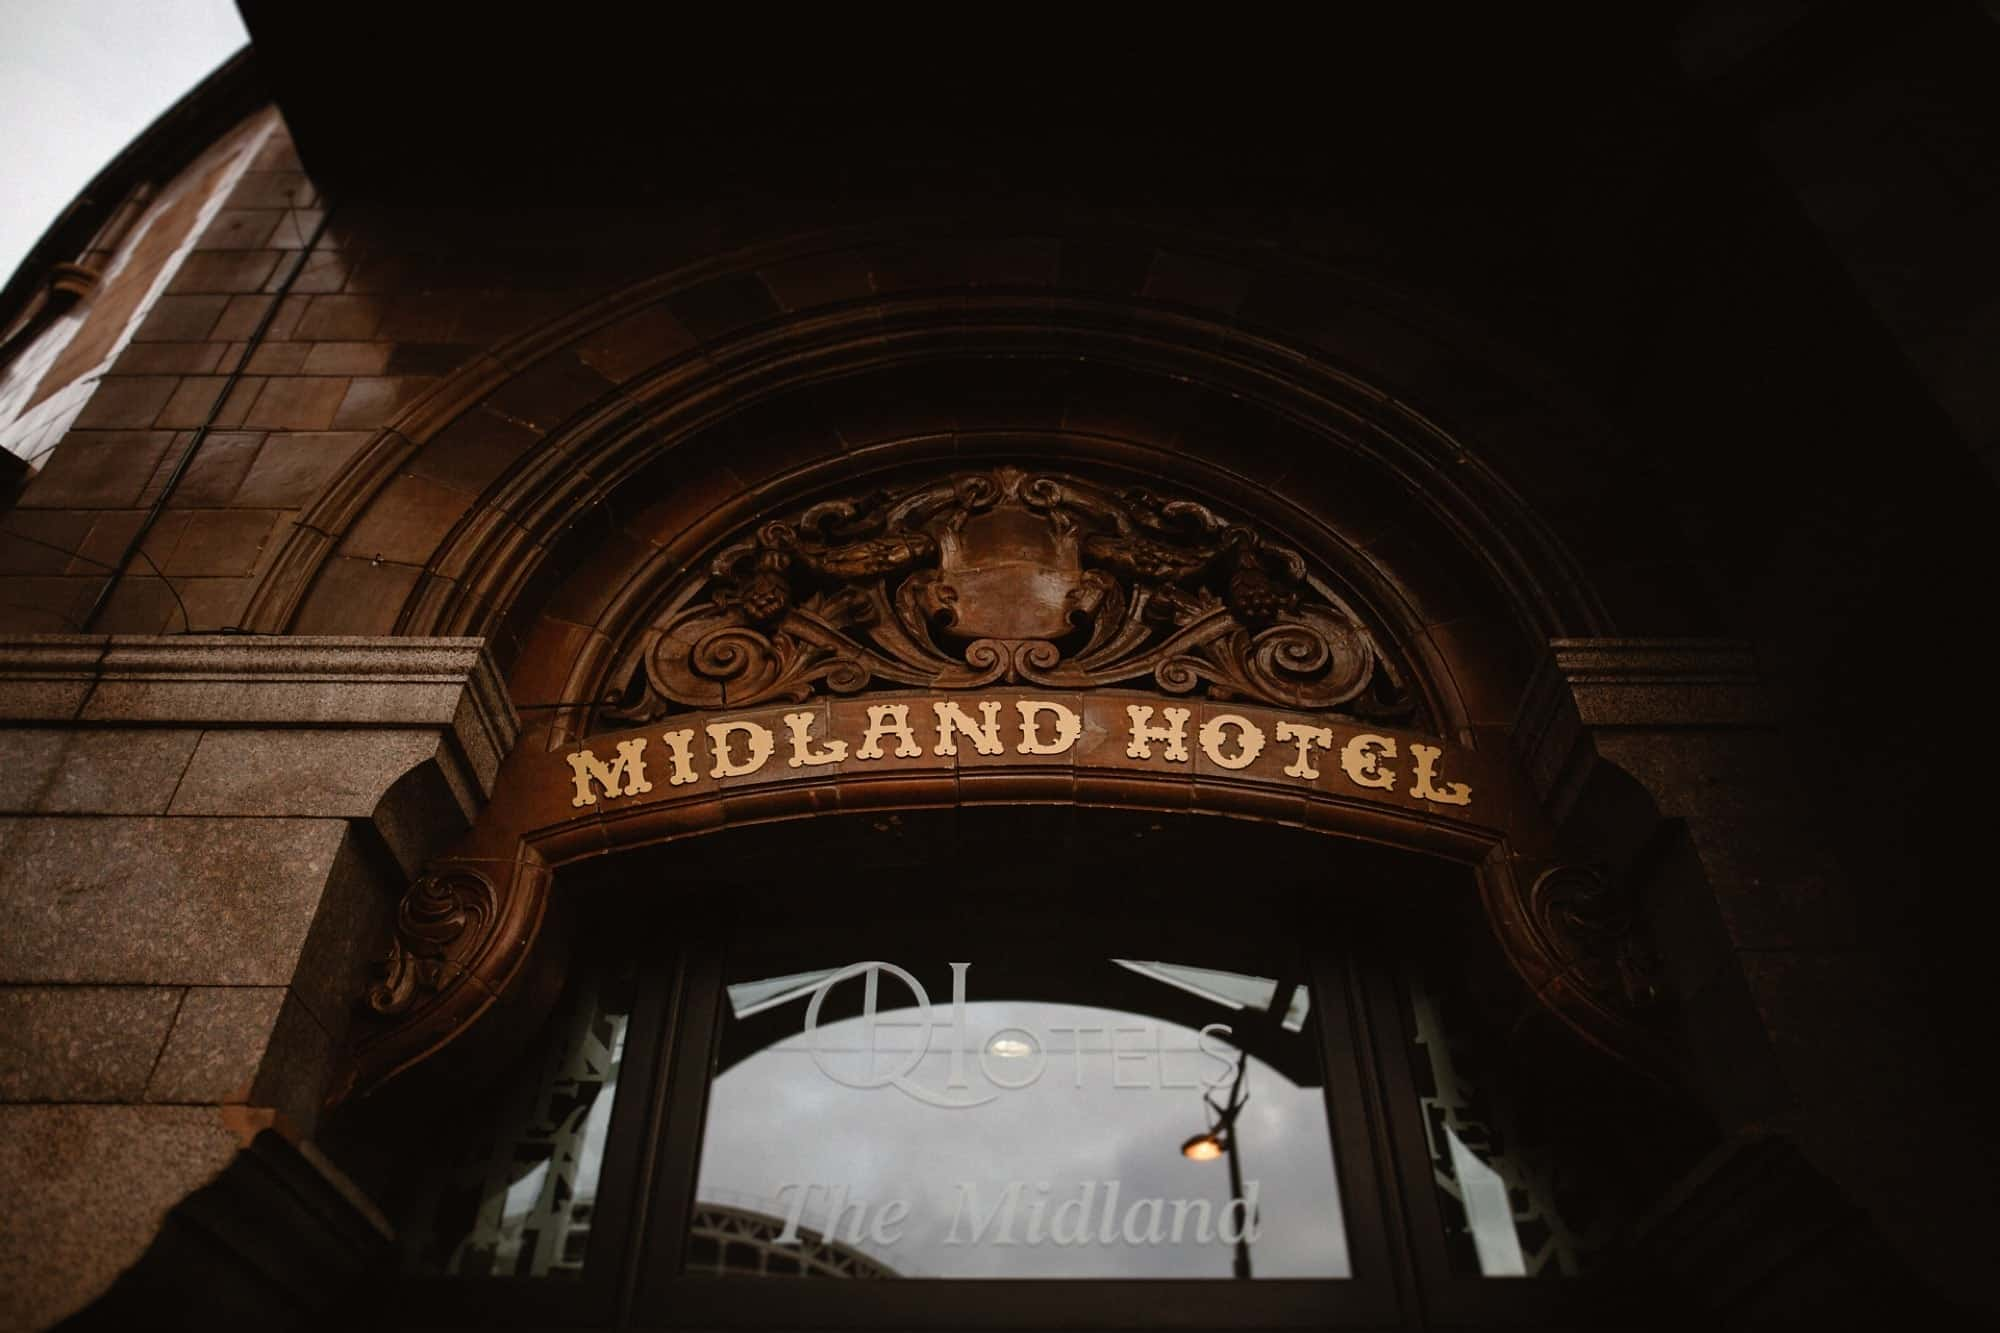 Outside the Midland Hotel Manchester